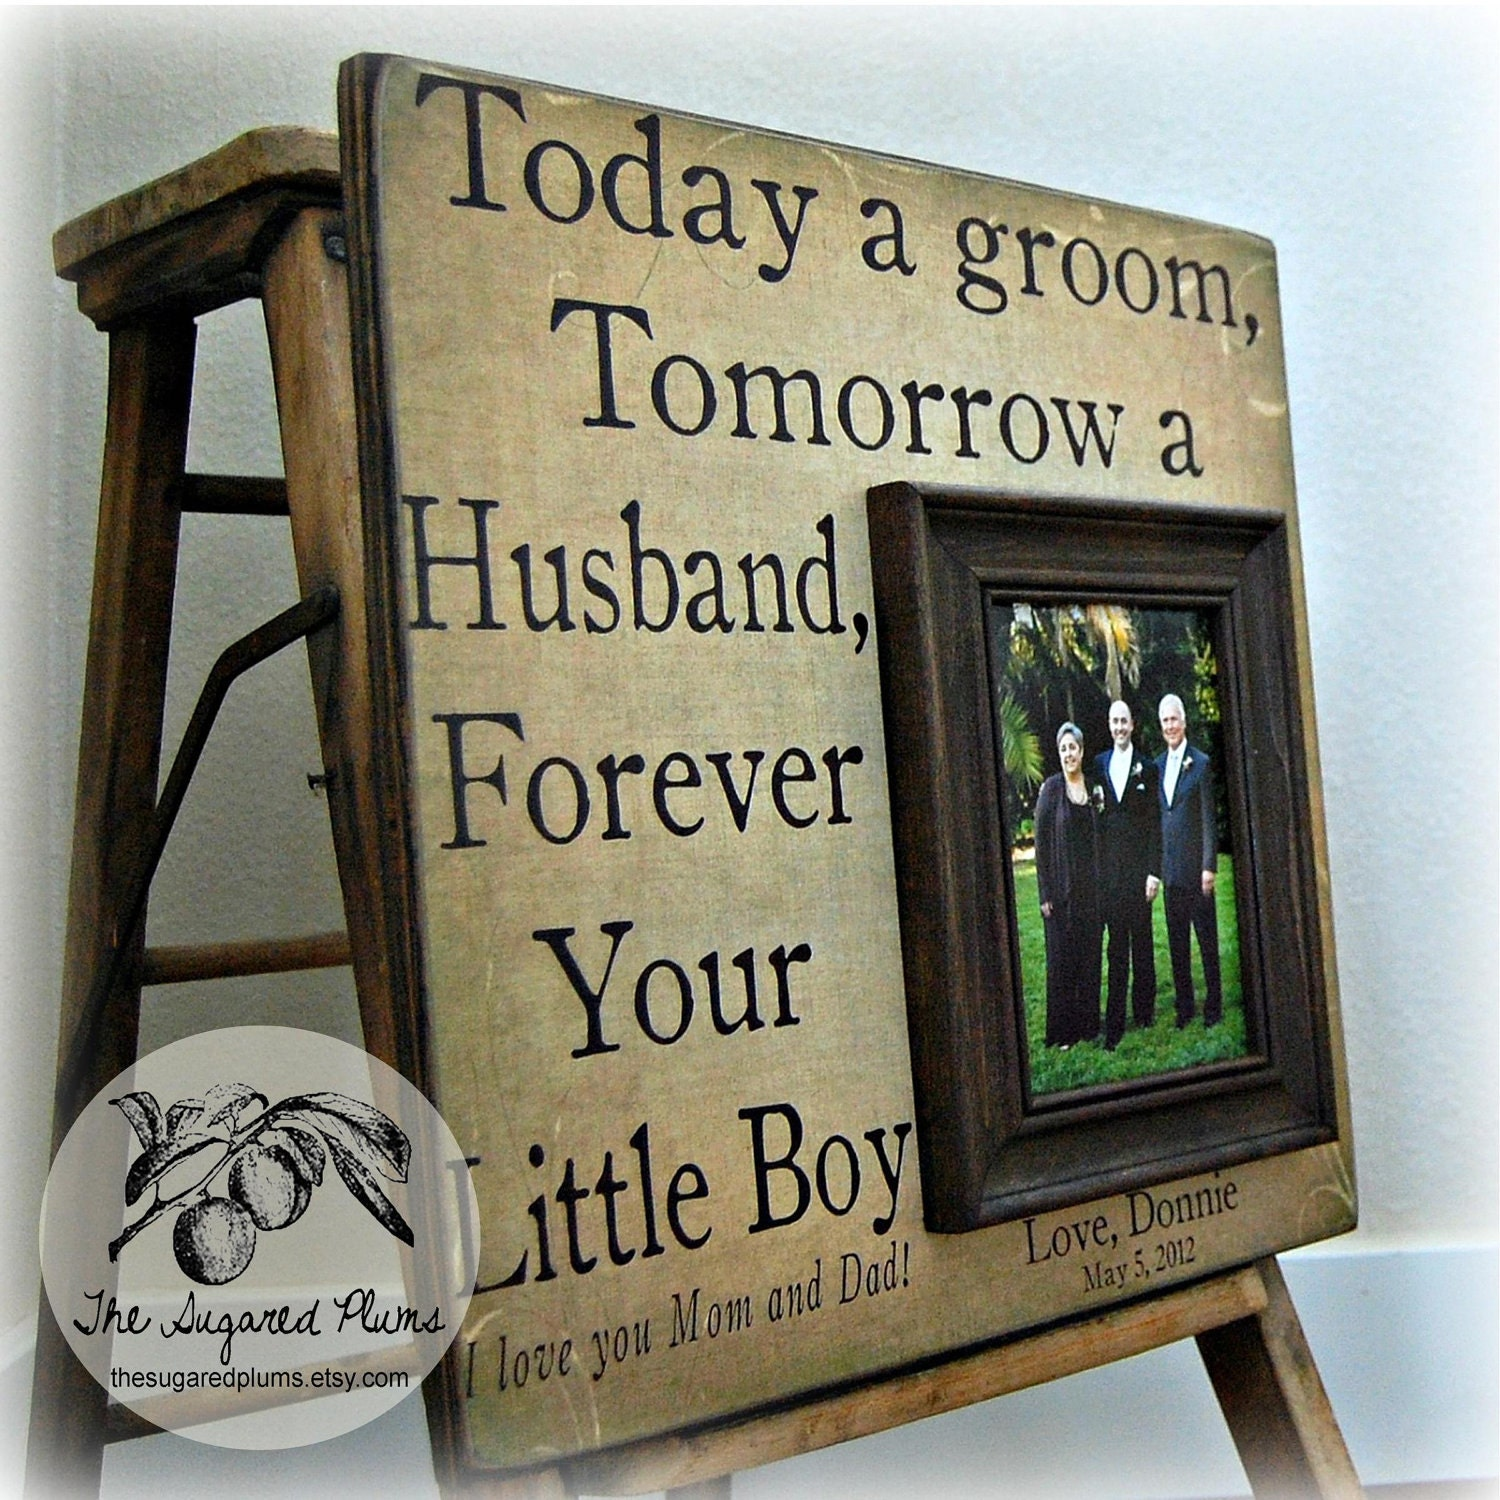 What To Get For A Wedding Gift: Parents Wedding Gift Personalized Picture Frame 16x16 TODAY A